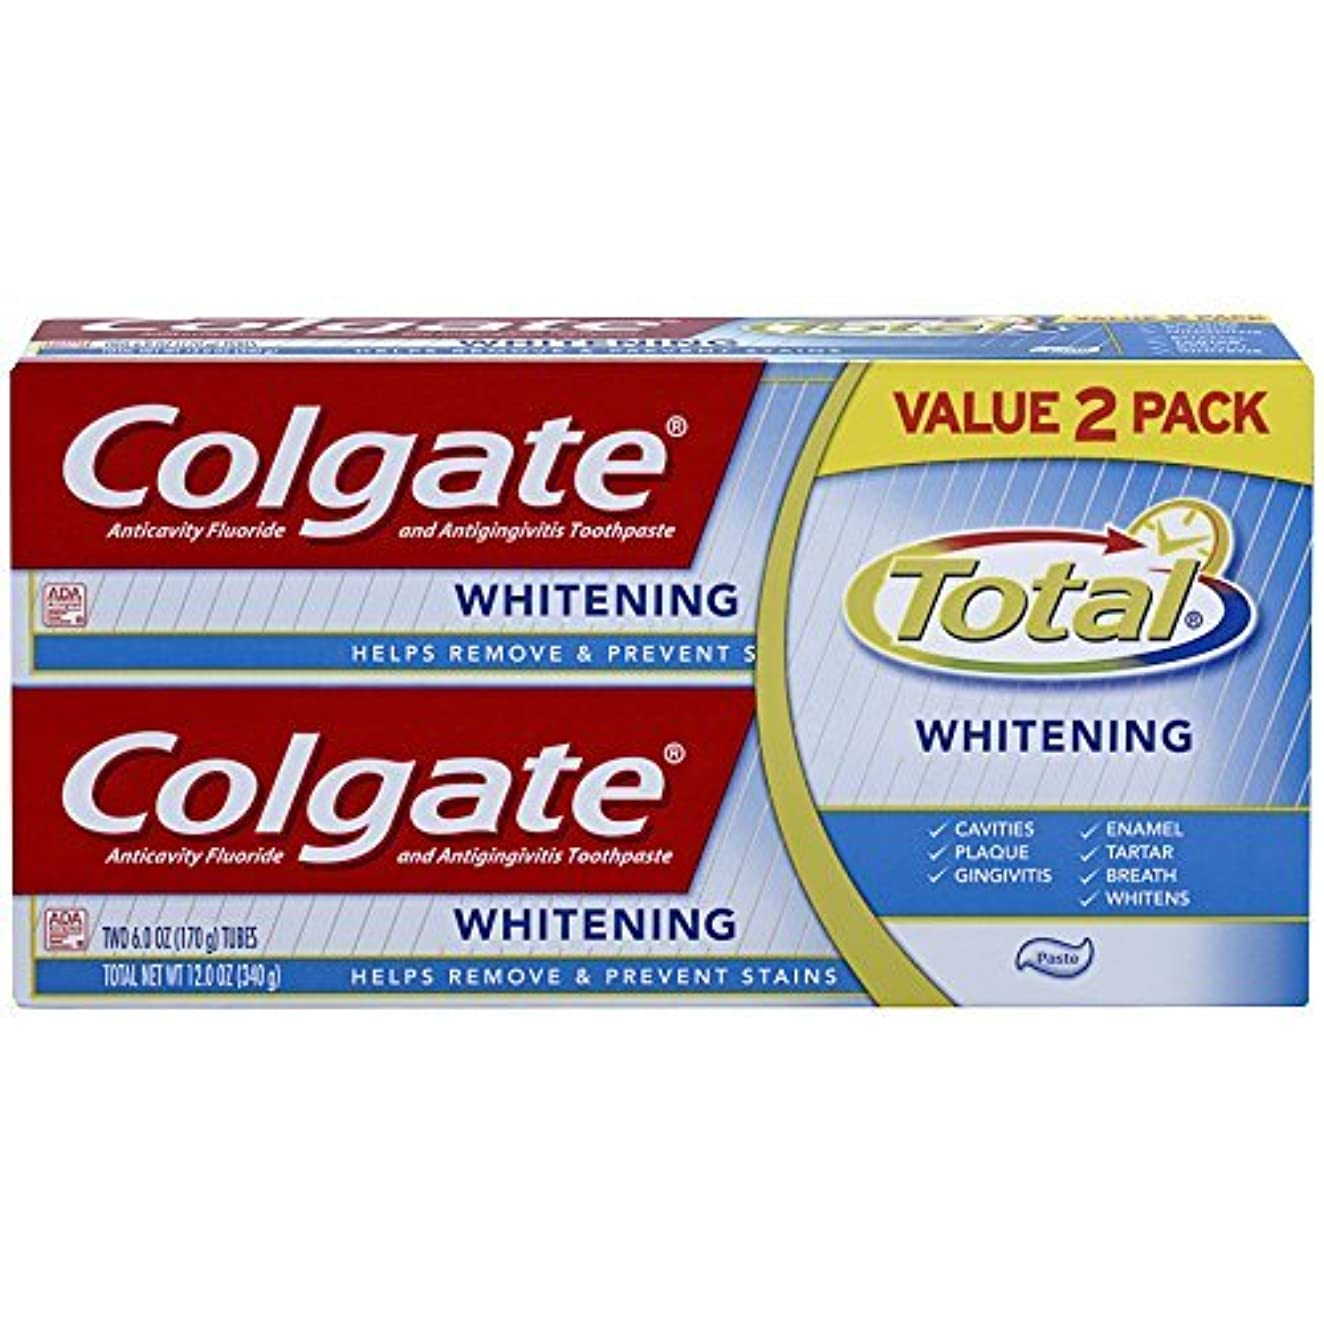 Colgate Total Whitening Toothpaste Twin Pack - 6 ounce [並行輸入品]